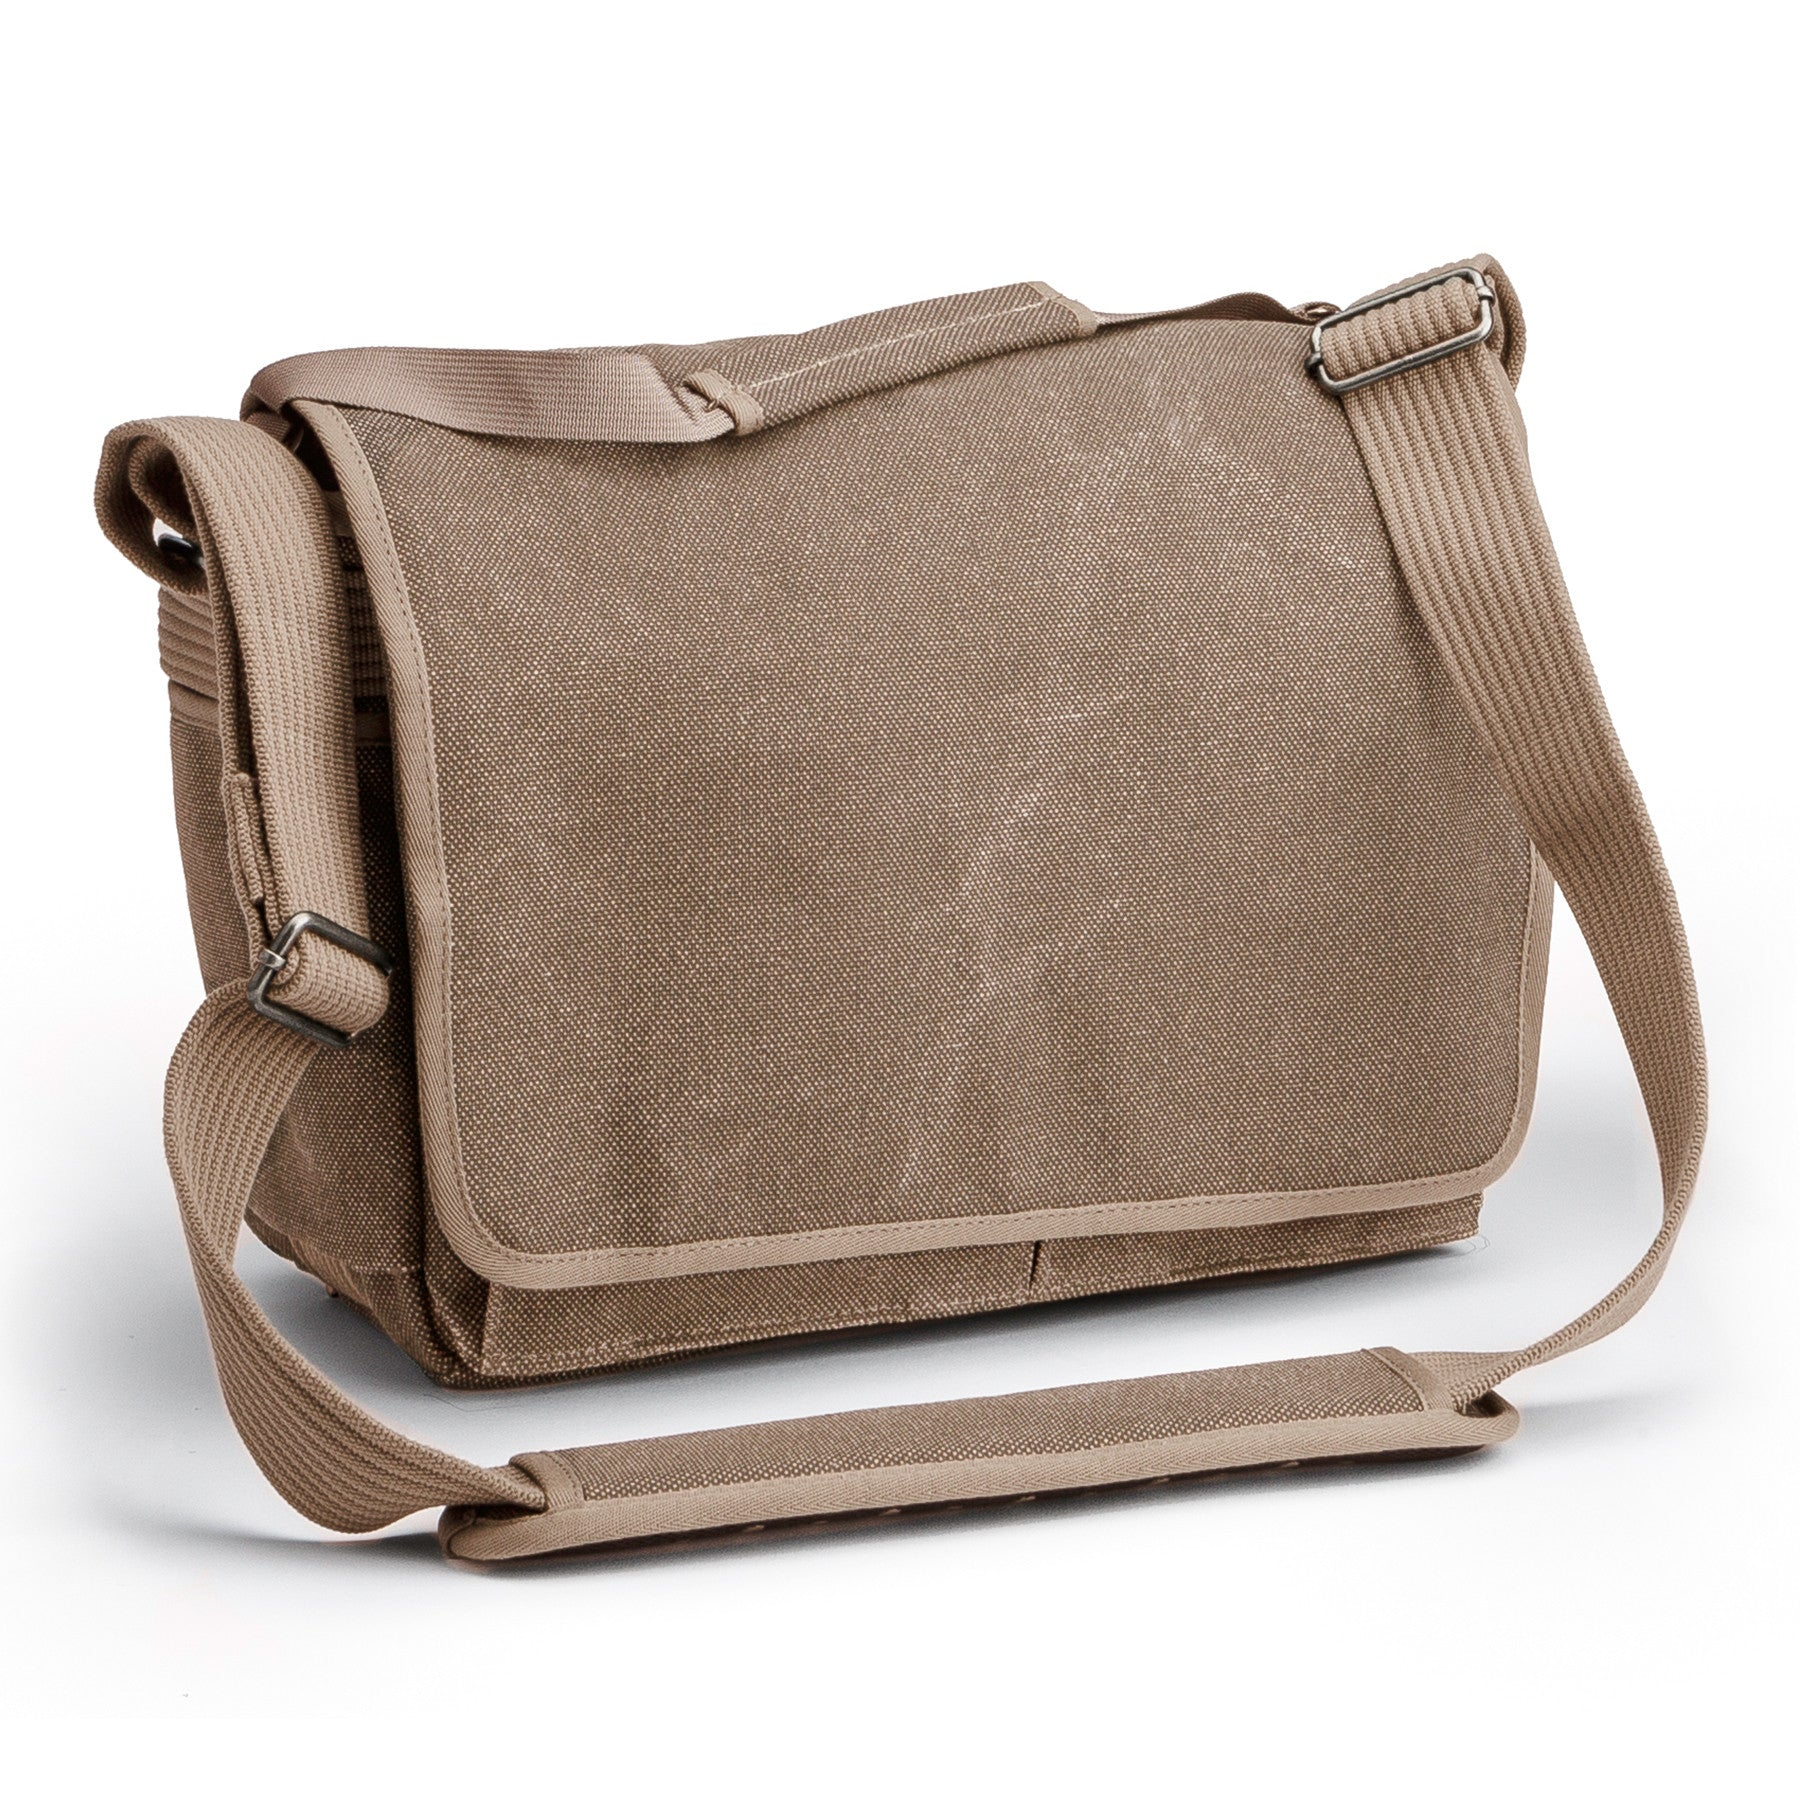 Retrospective 30 - Best Photography Camera Shoulder Bag • Think Tank ...